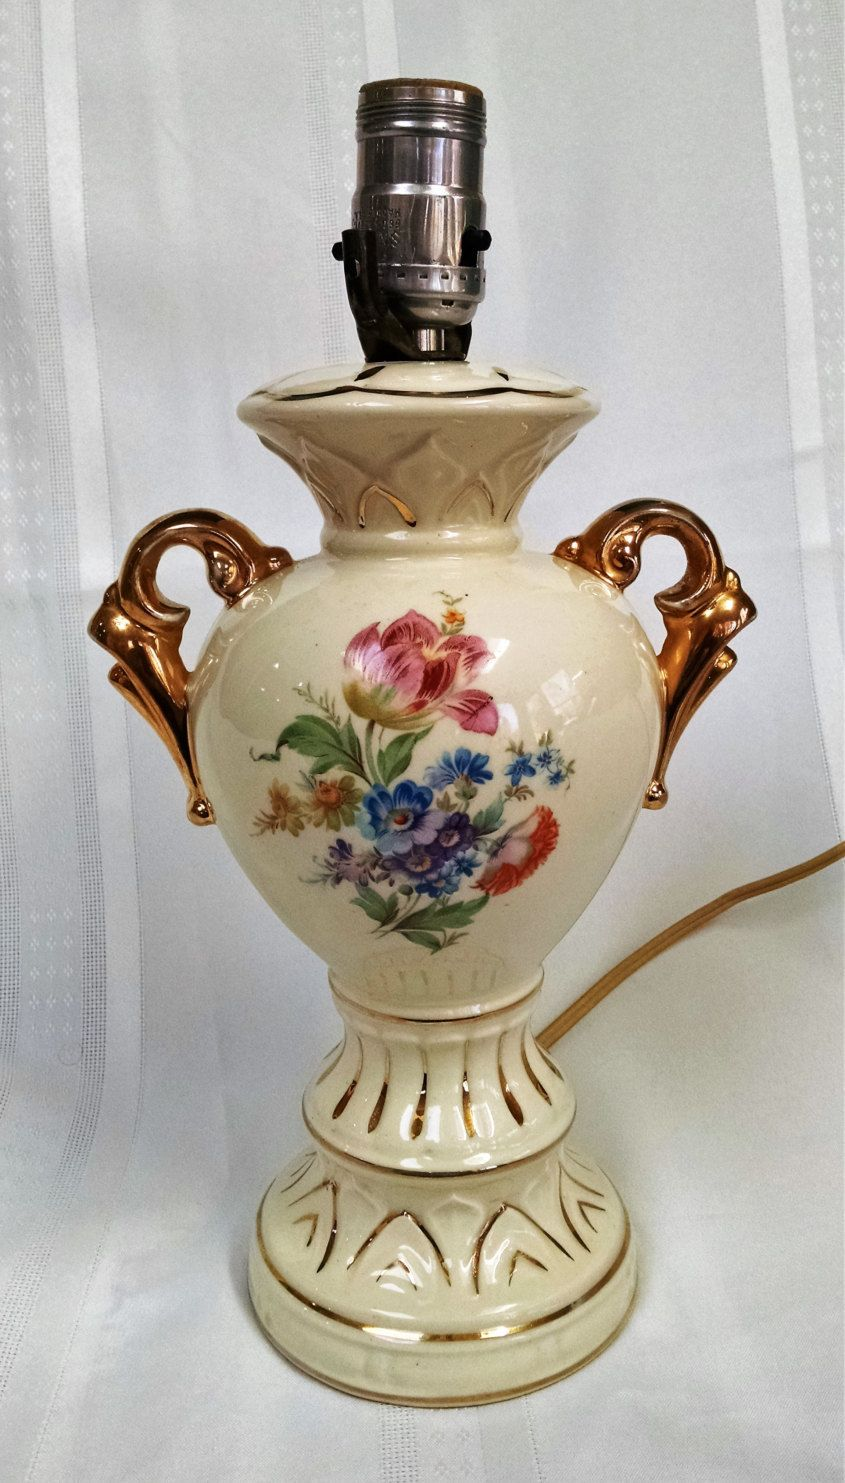 Vintage Ceramic/China Lamp With Floral Design And Ornate Gold Trim   Table  Lamp By